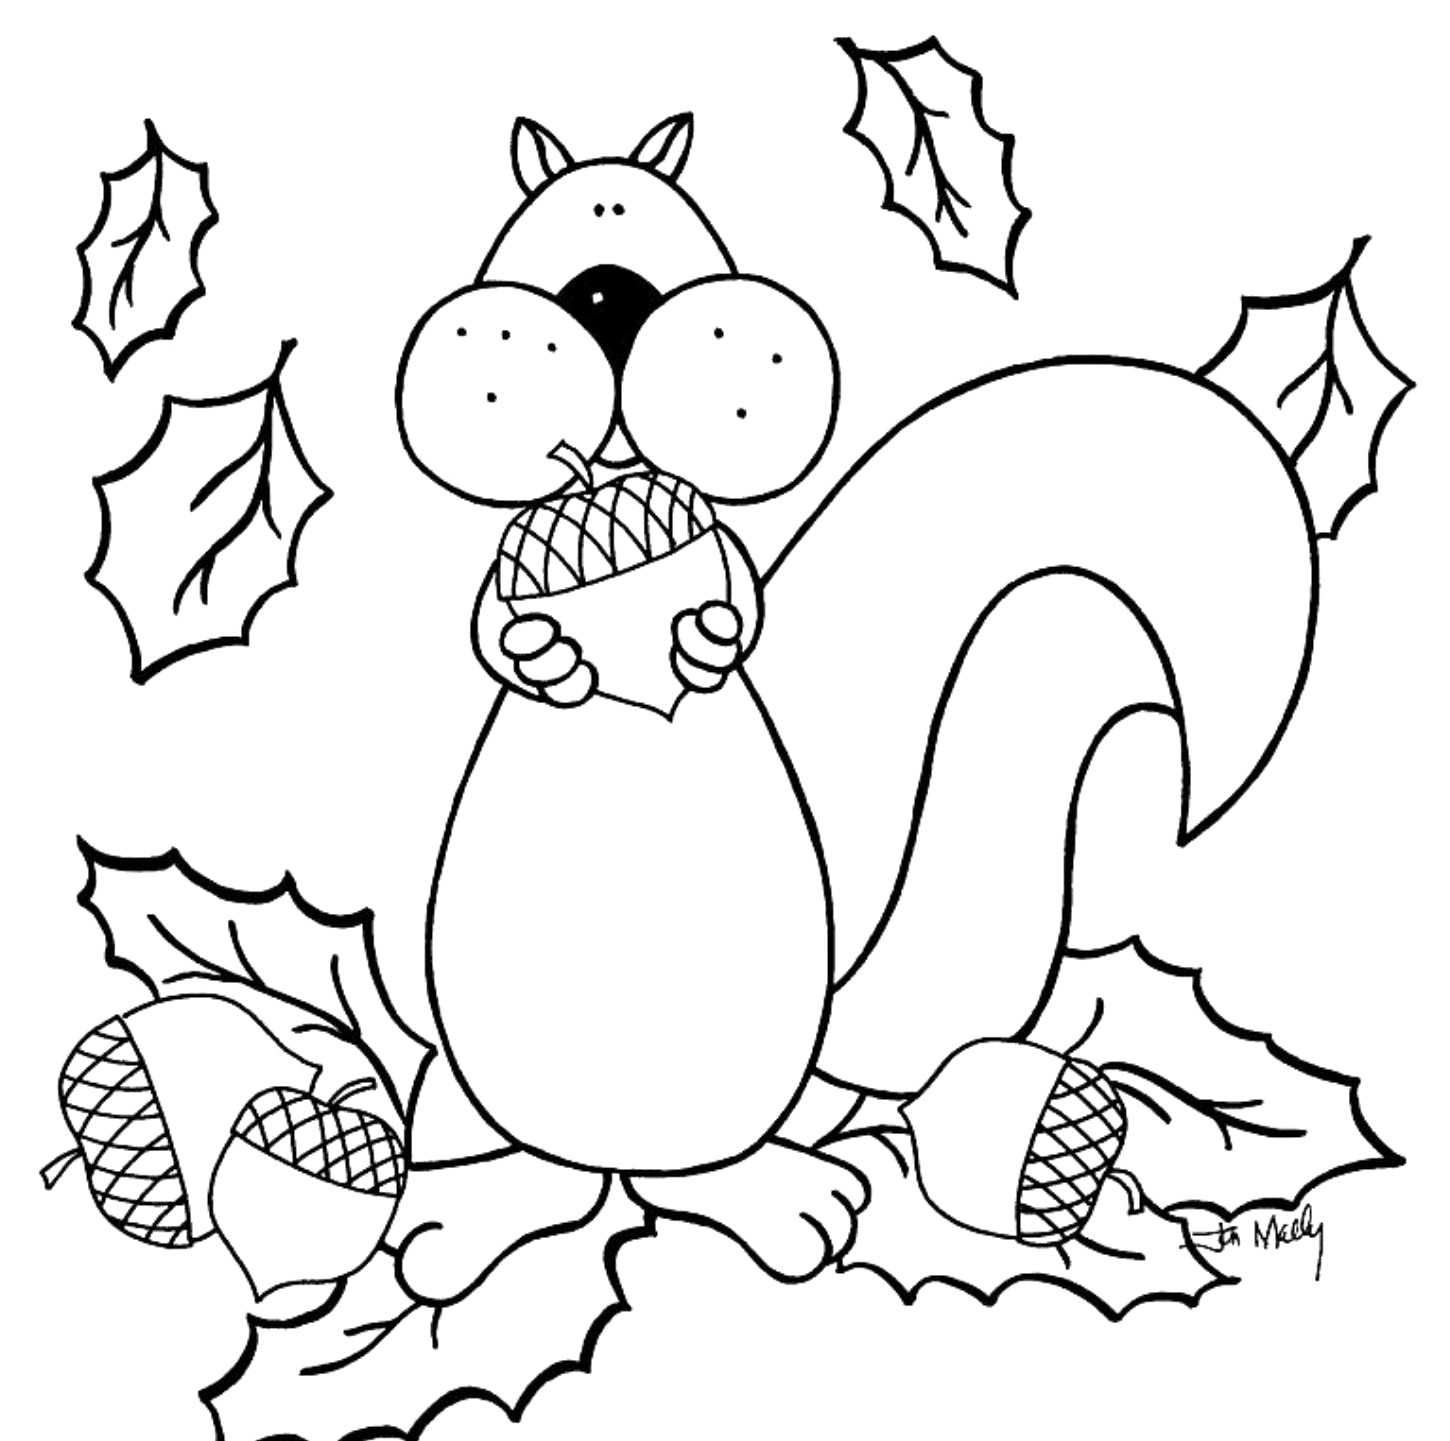 Free Printable Fall Coloring Pages For Kids - Best Coloring Pages - Free Printable Coloring Pages Fall Season